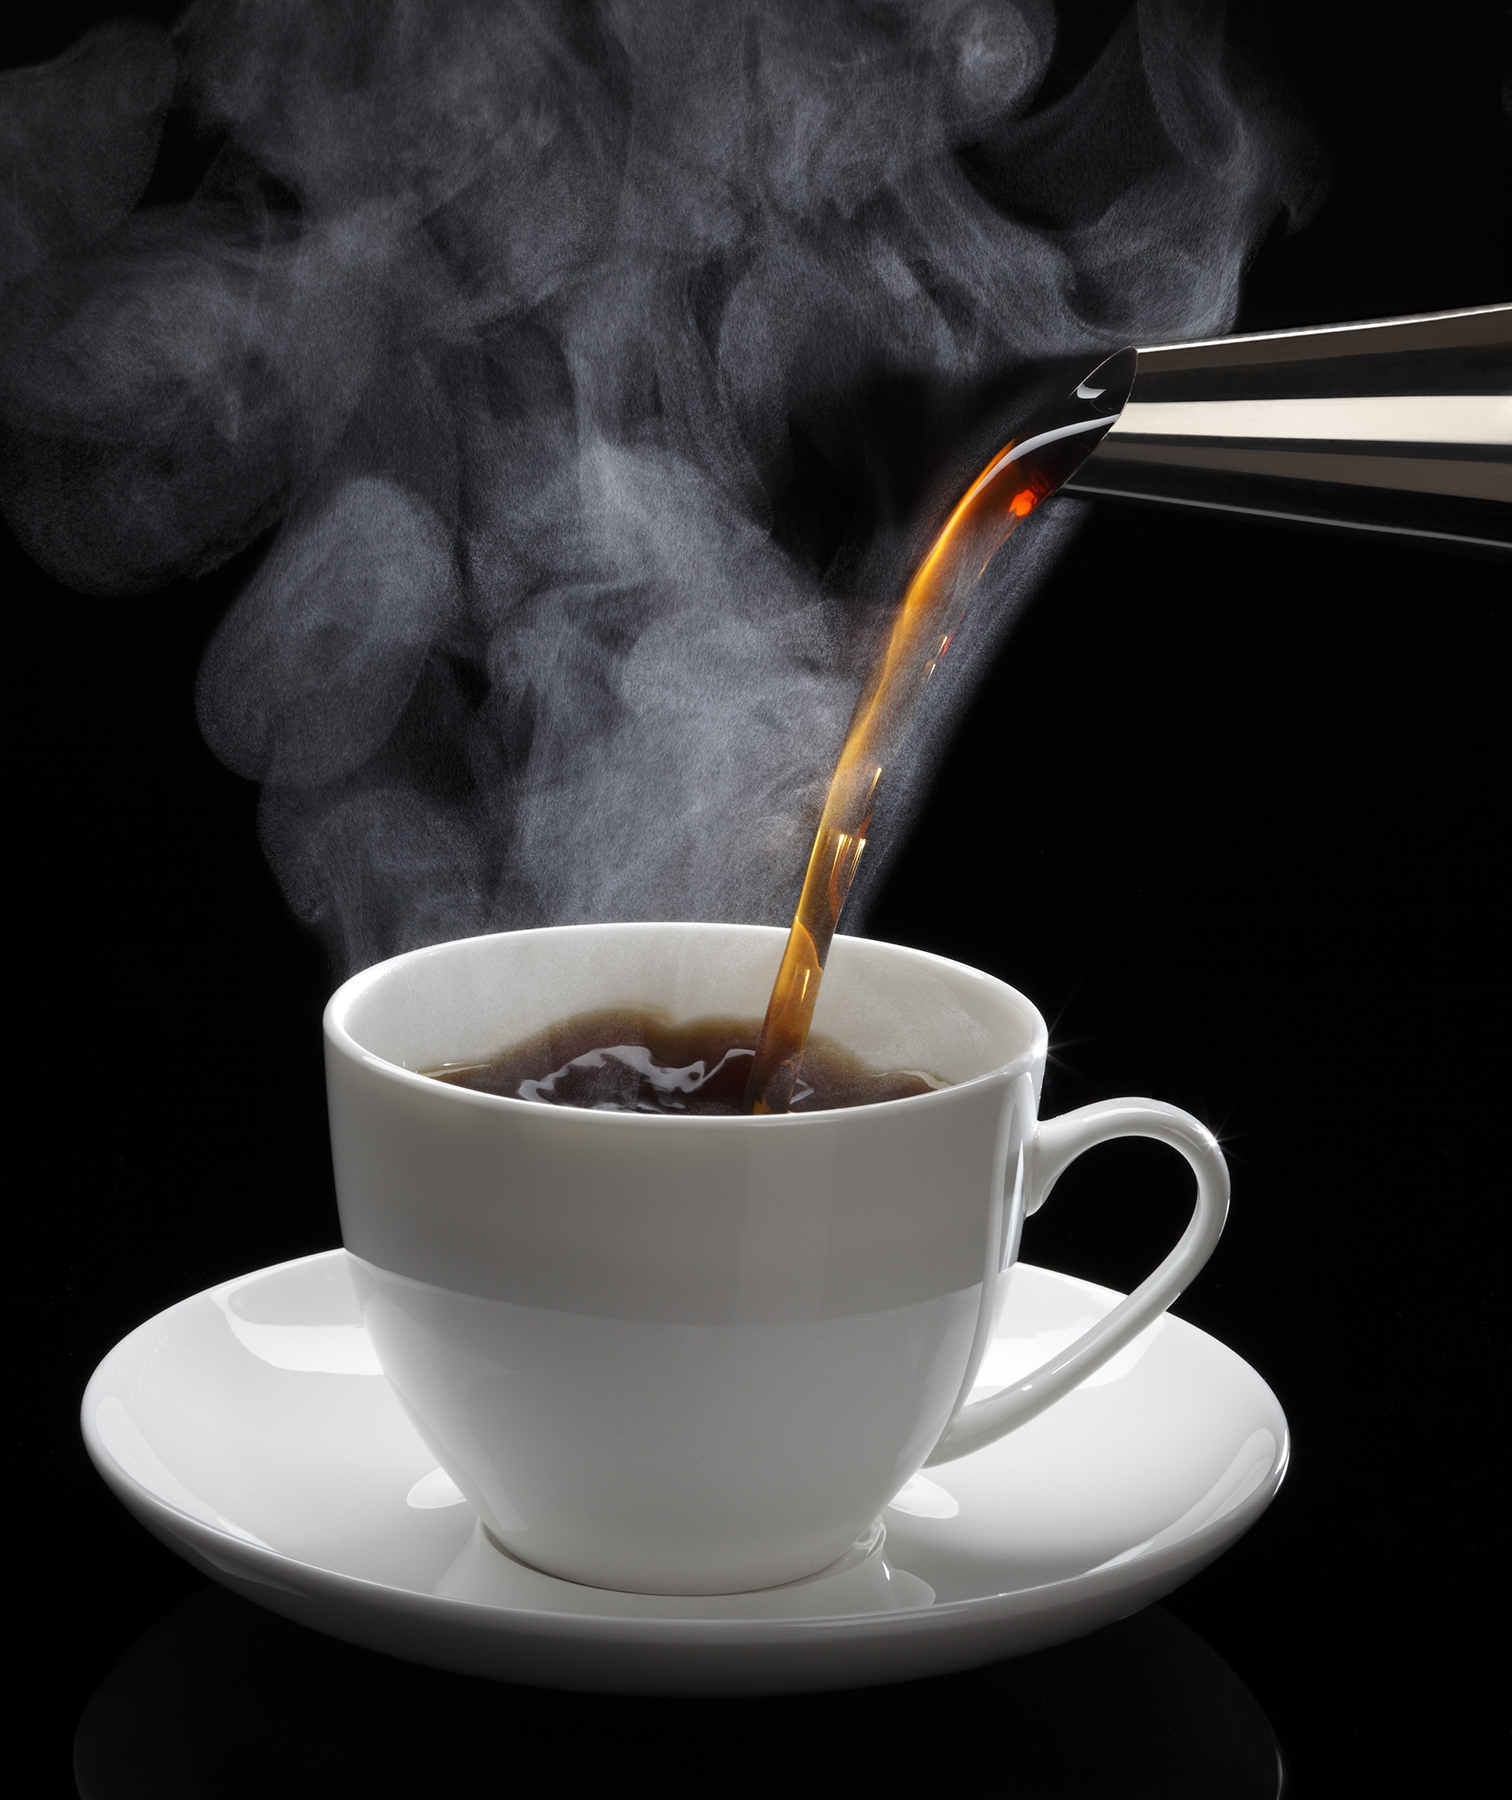 pouring-hot-coffee